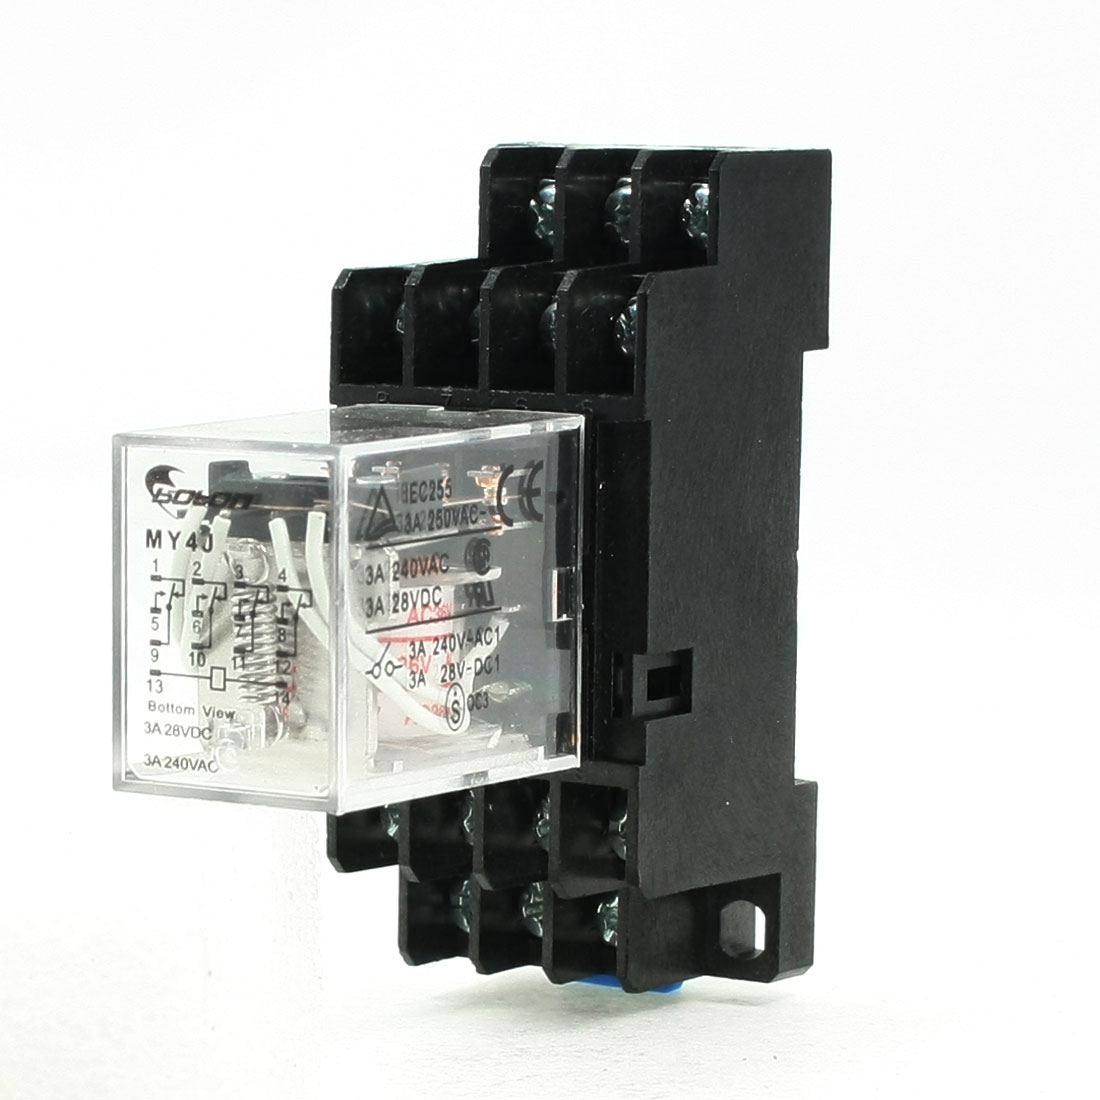 MY4J AC36V Coil 5A 240V AC 28V DC 35mm DIN Rail Power Relay 14 Pin 4PDT w Socket